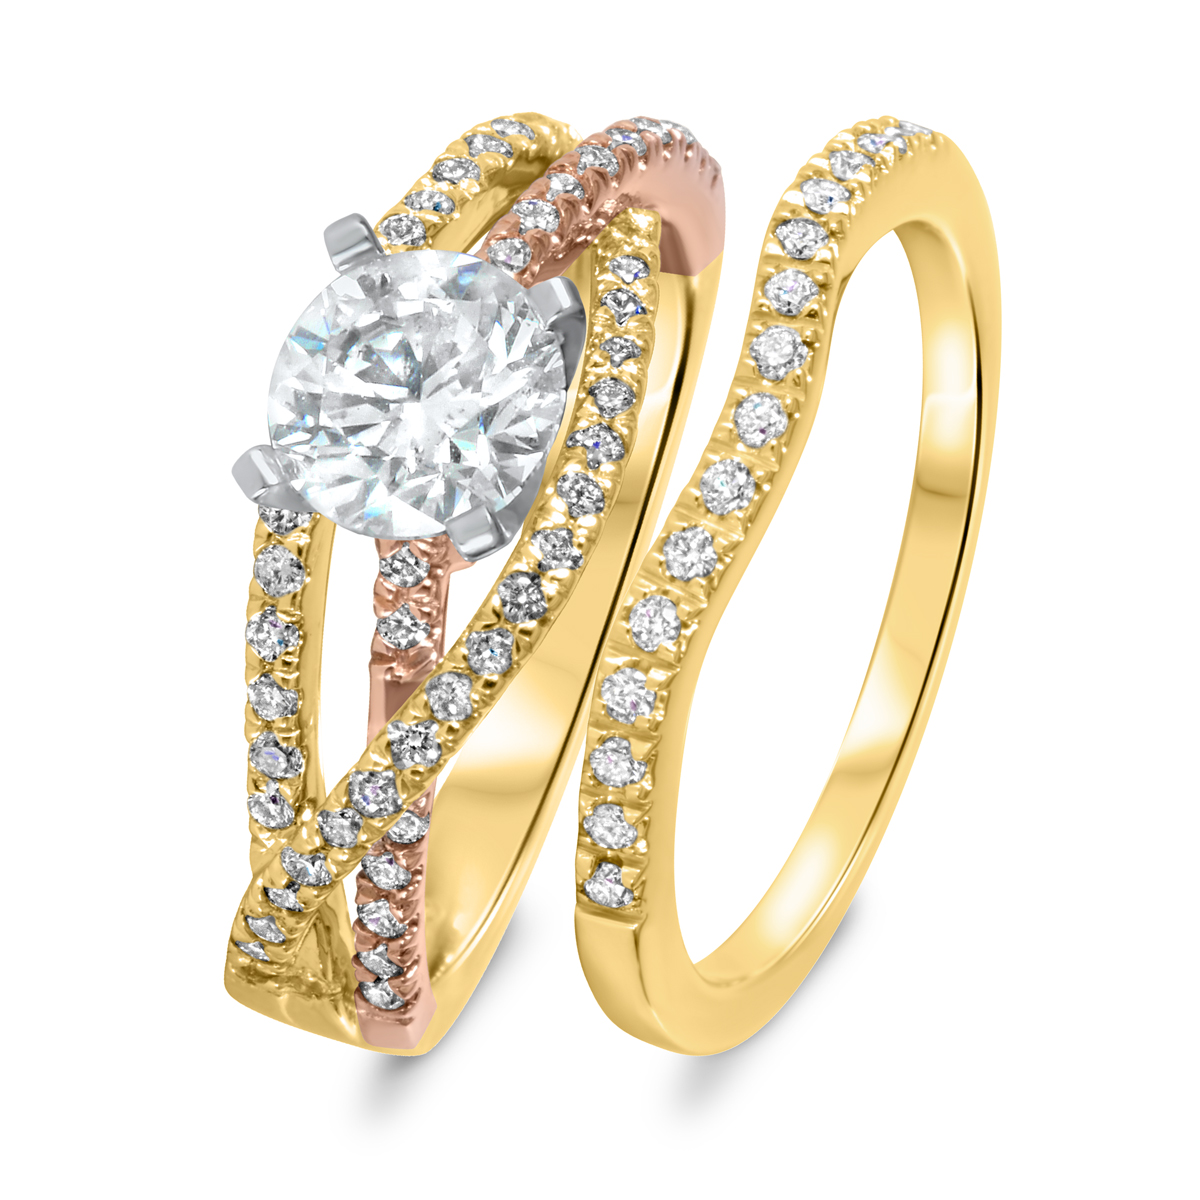 1 3/8 CT. T.W. Diamond Women's Bridal Wedding Ring Set 14K Yellow Gold